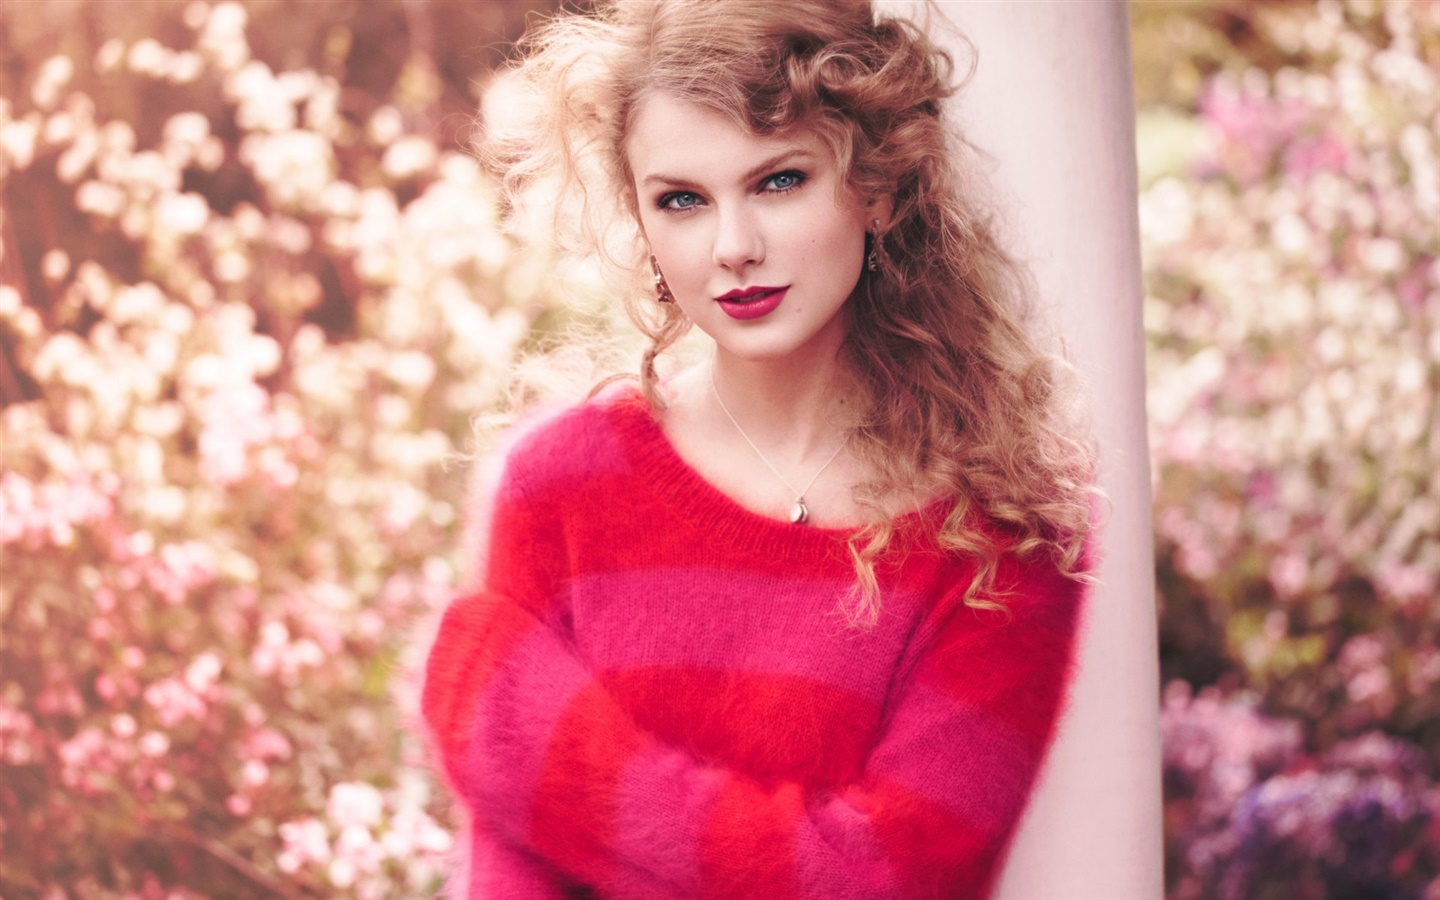 Taylor Swift 25 1440x900 wallpaper